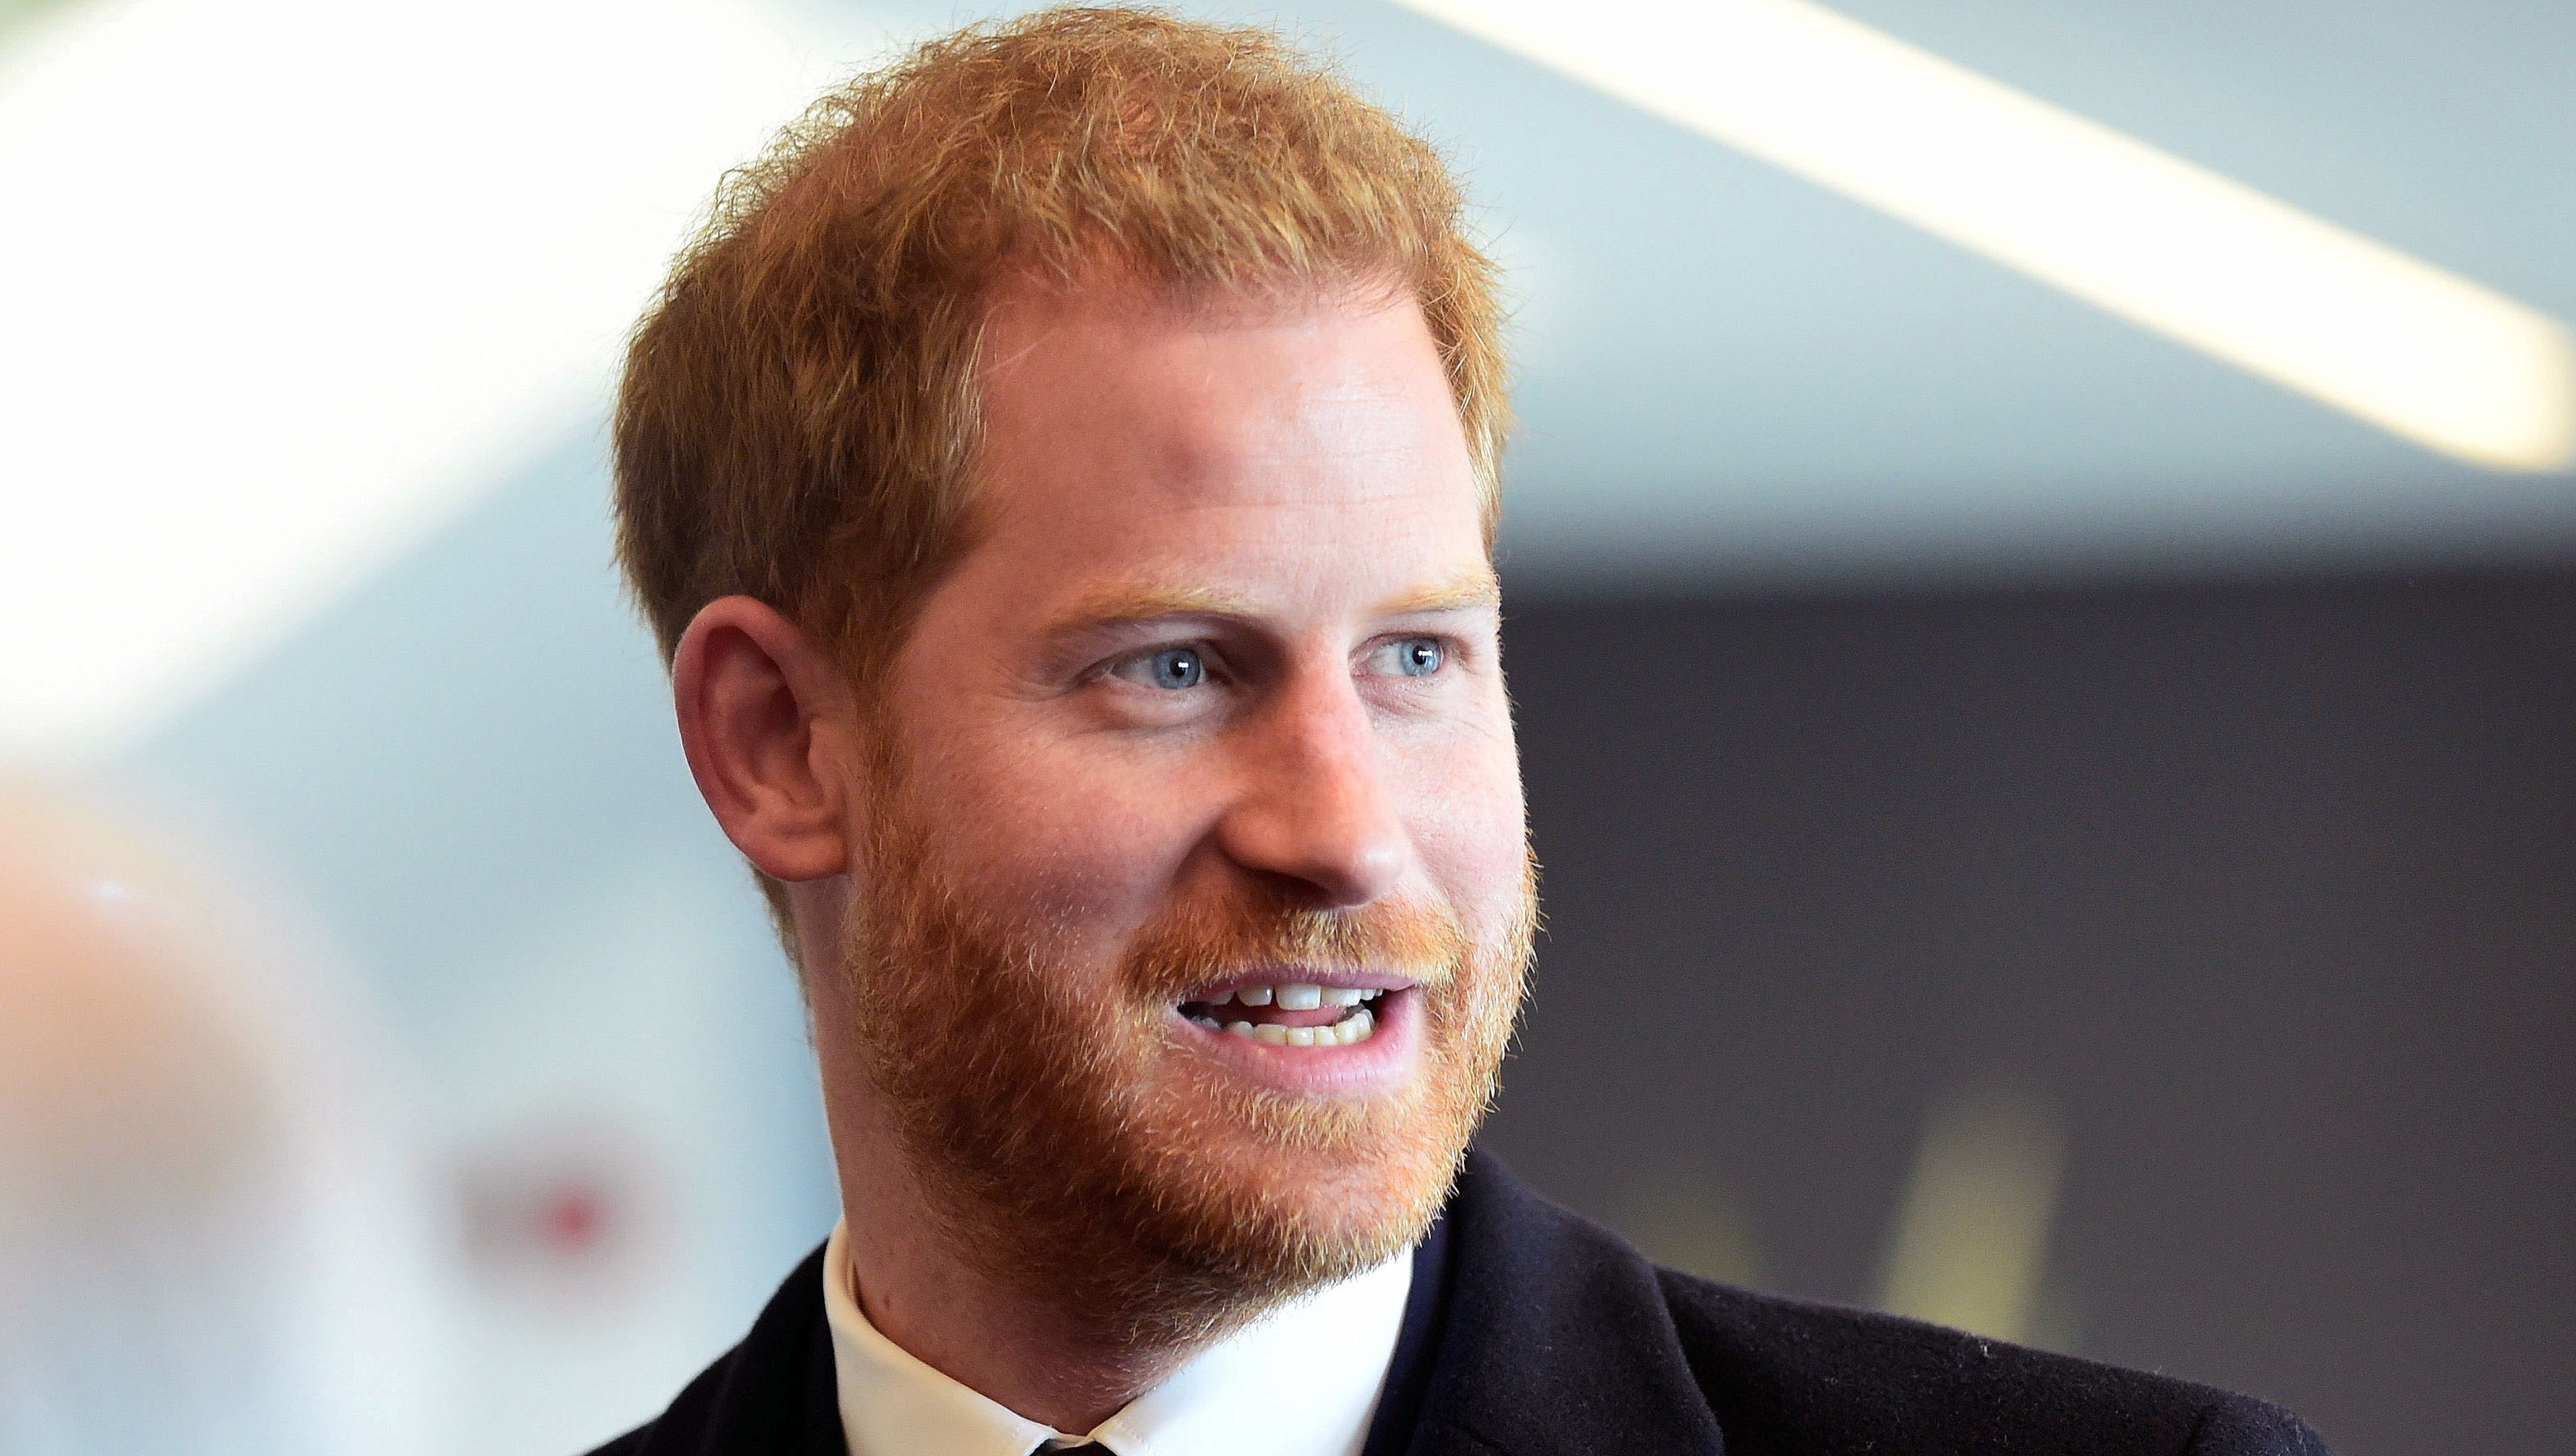 Prince Harry Racked Up a $38,000 Bill on Infamous Naked Las Vegas Trip